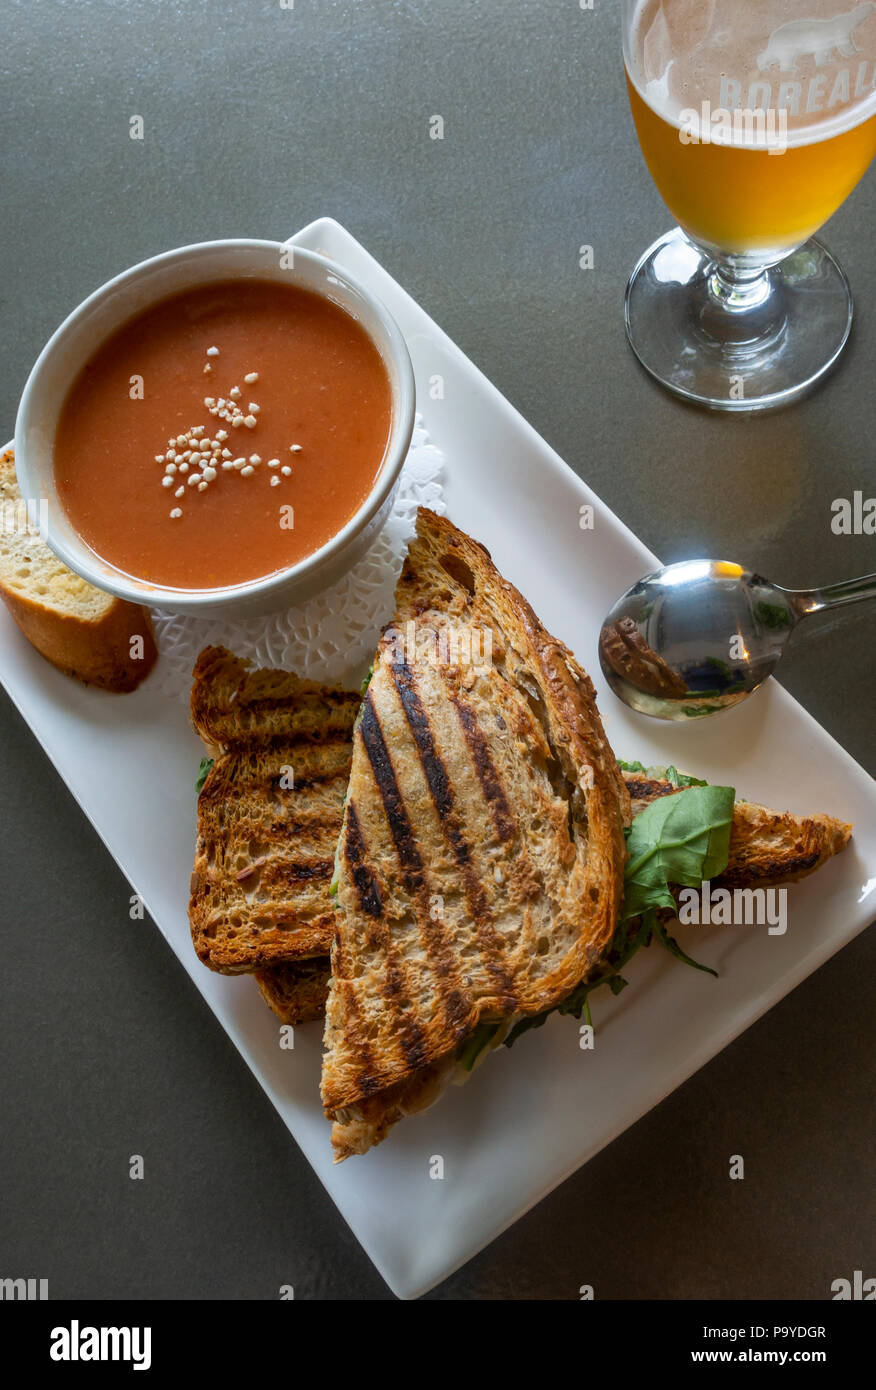 Toasted cheese sandwich with gazpacho and a blonde Canadian beer - Stock Image